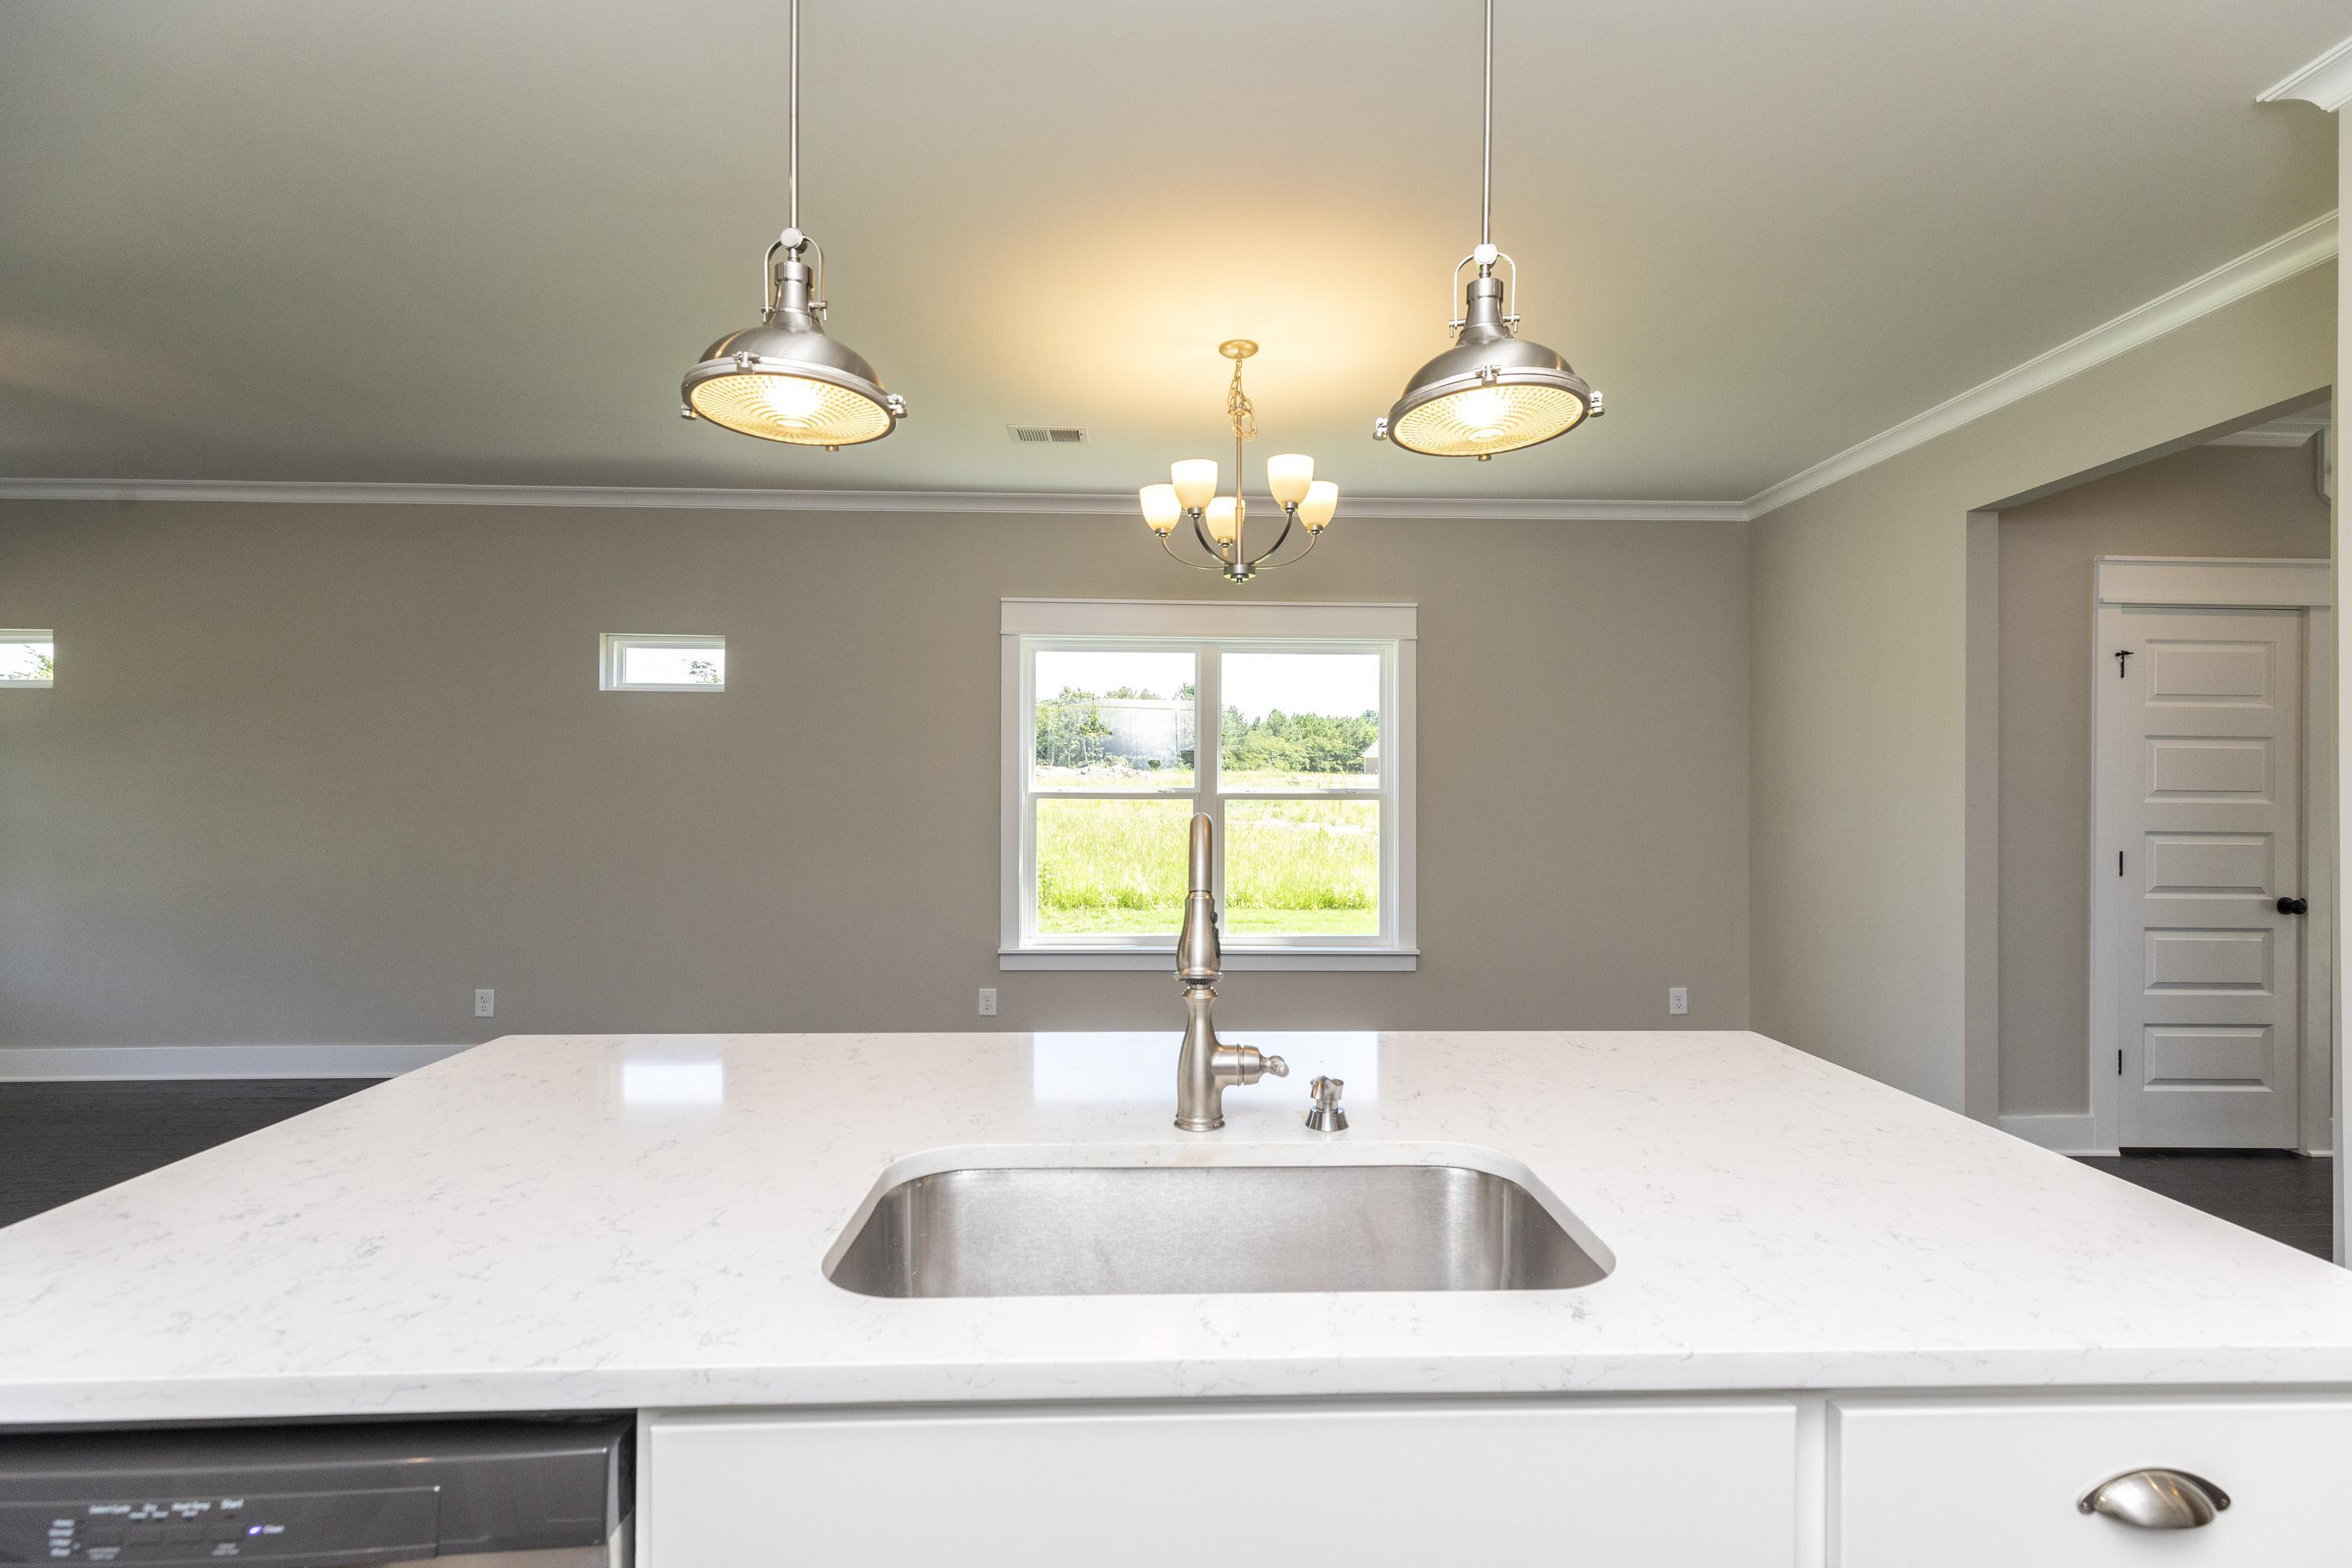 Kitchen featured in the Browning Brick By Tower Homes in Birmingham, AL